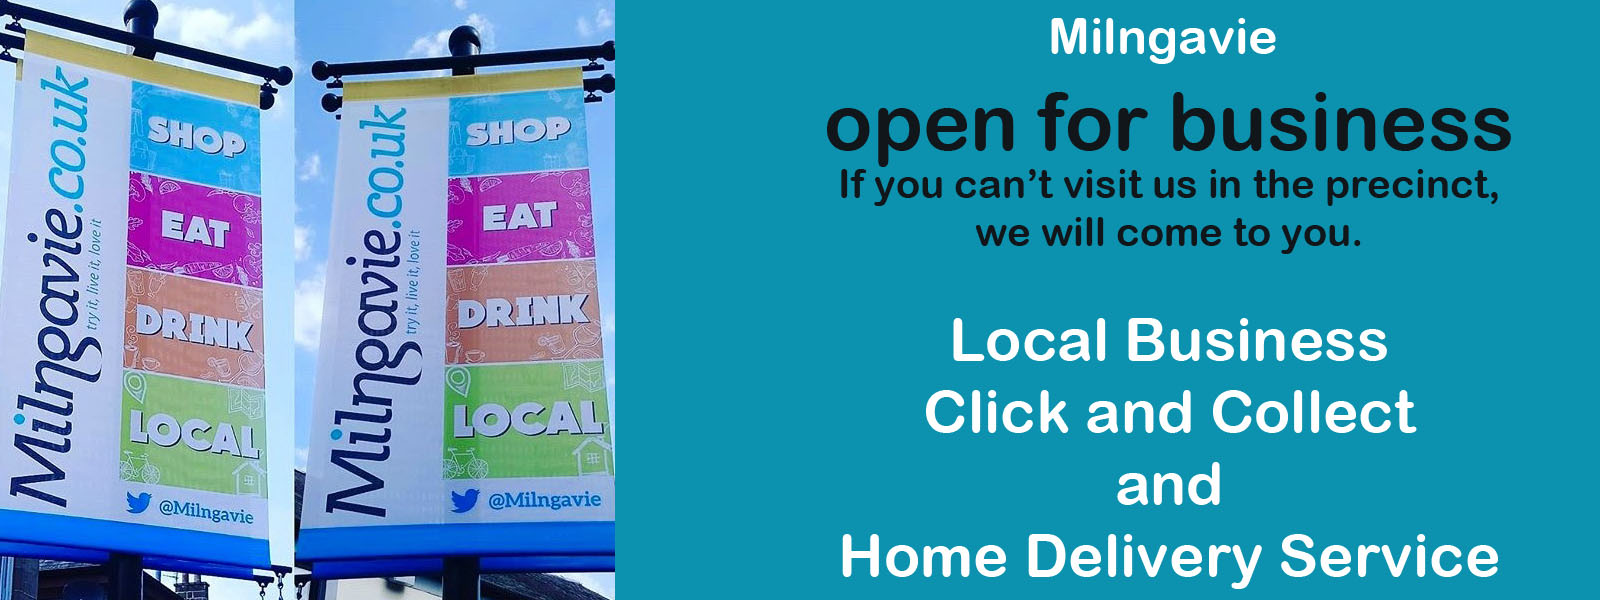 Milngavie Click and Collect Home Delivery